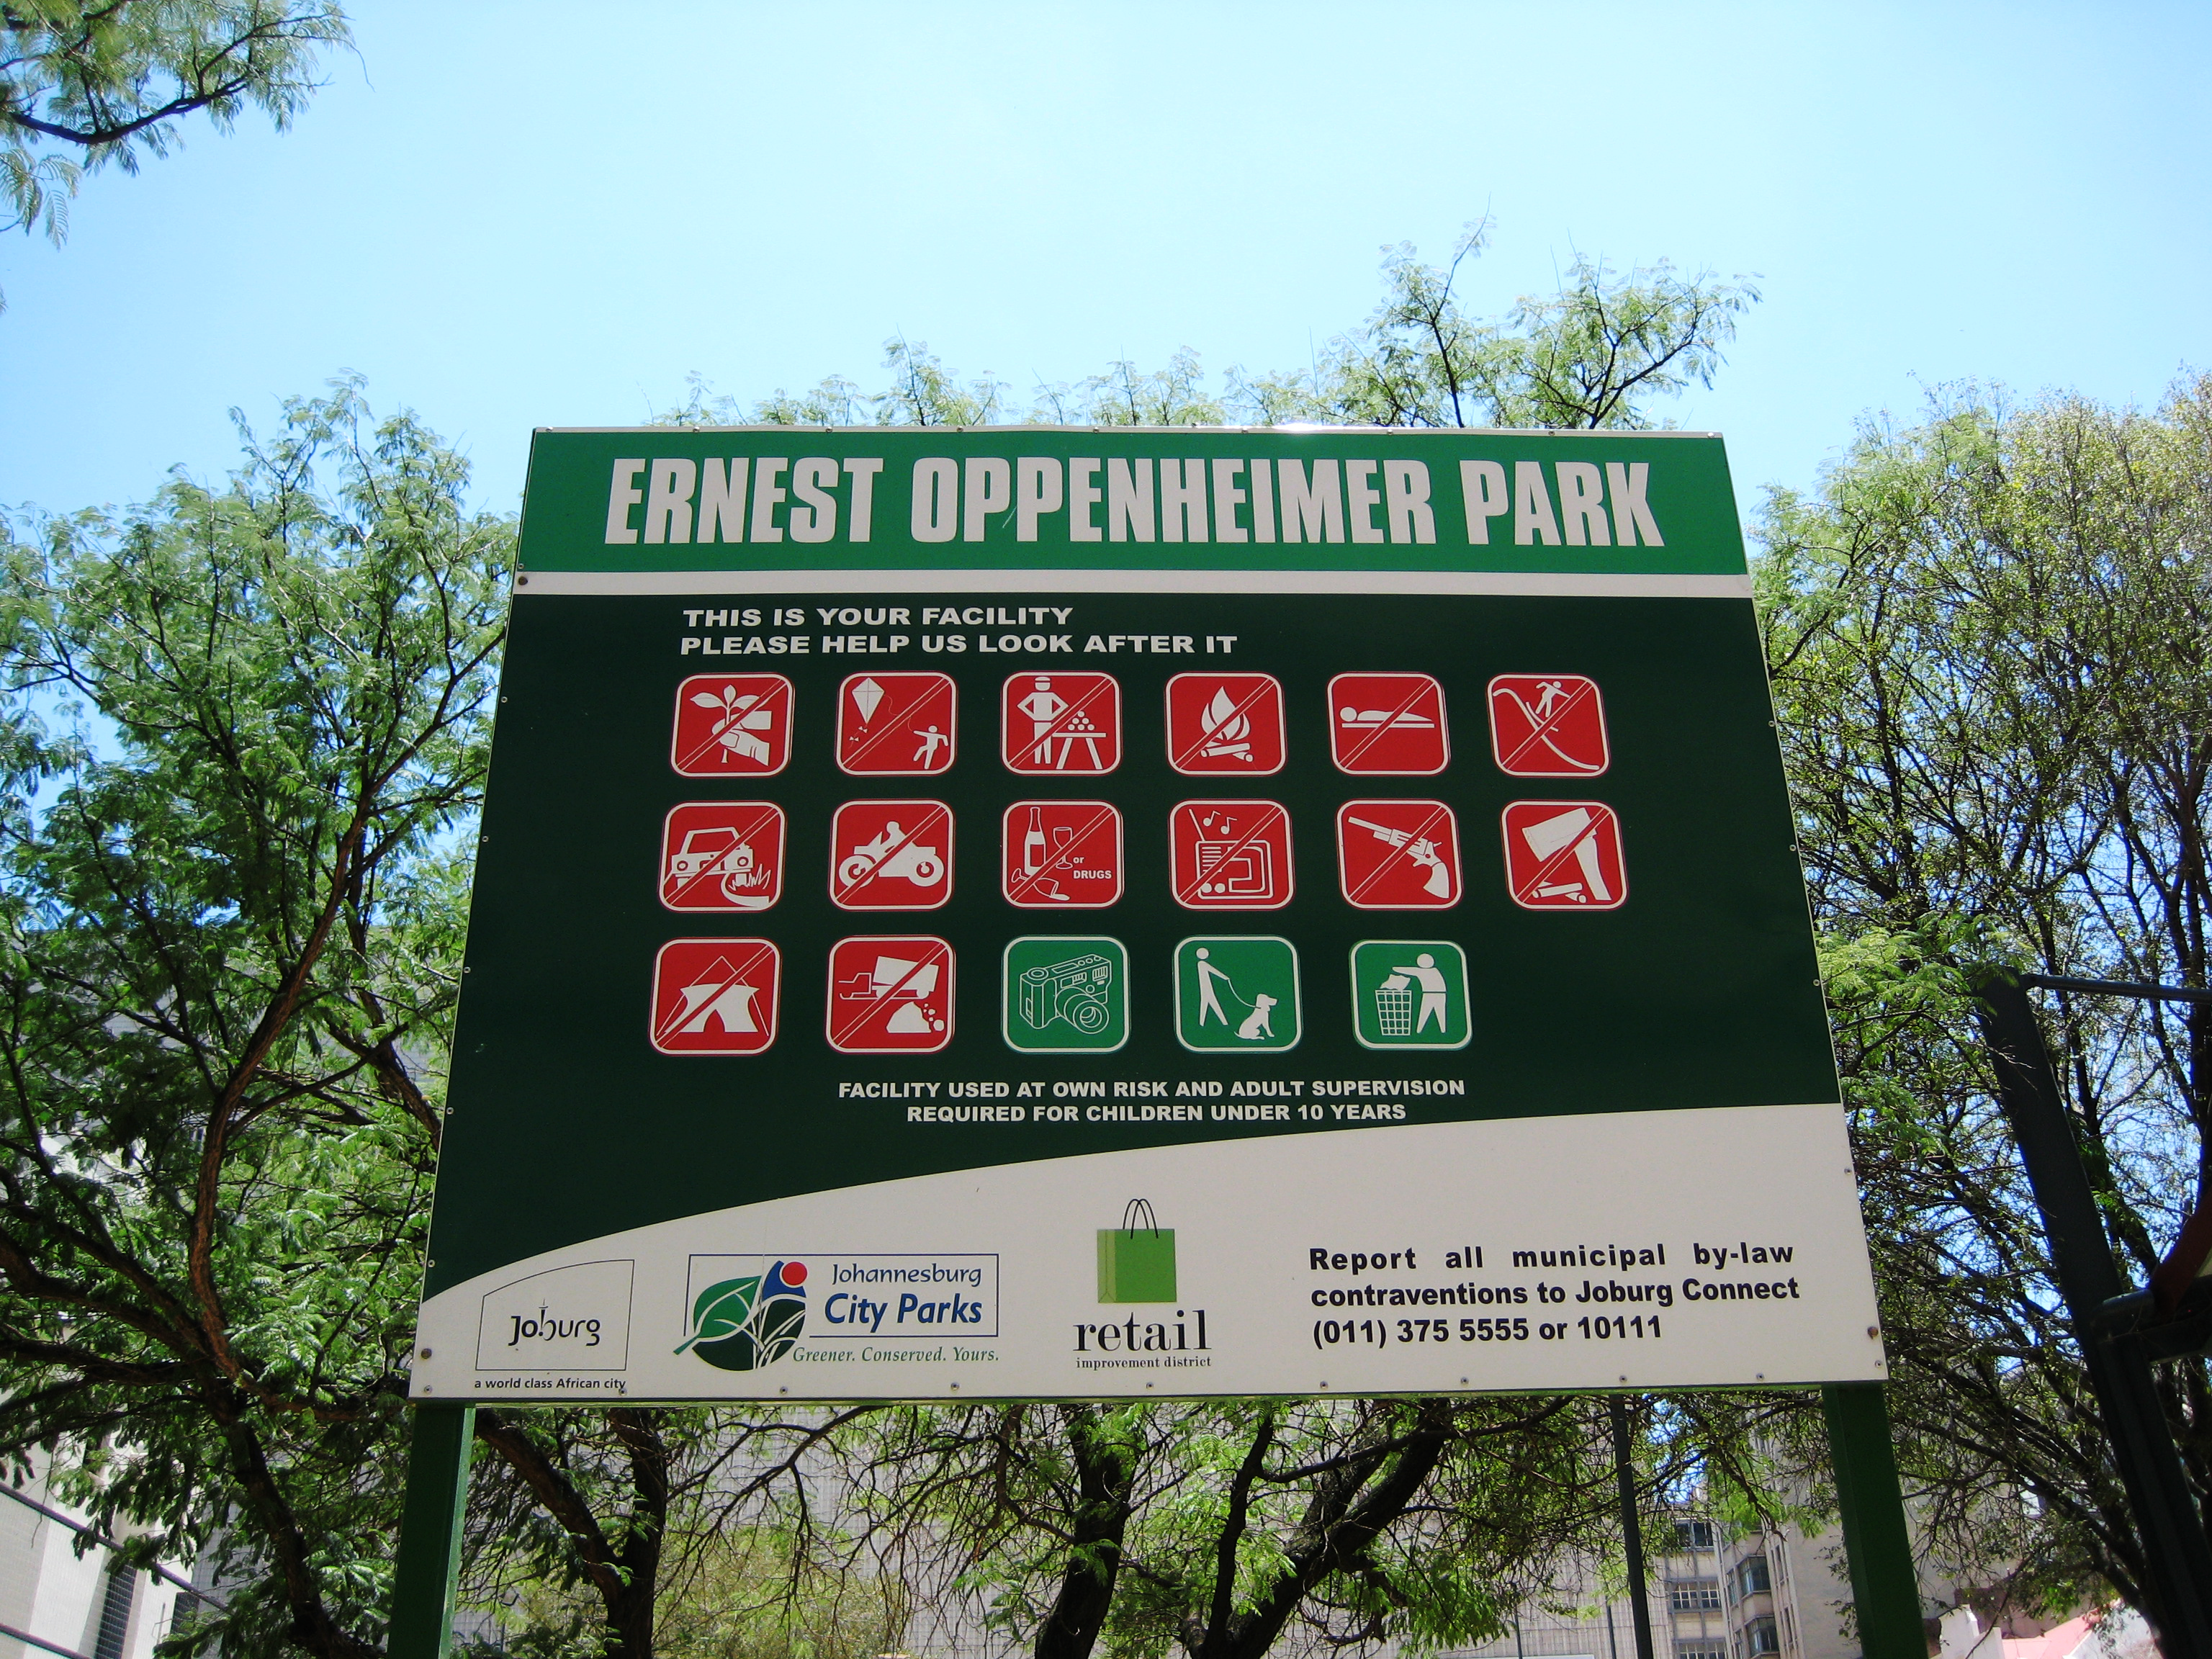 A sign in Ernest Oppenheimer park with pictograms indicating prohibited and encouraged behaviors